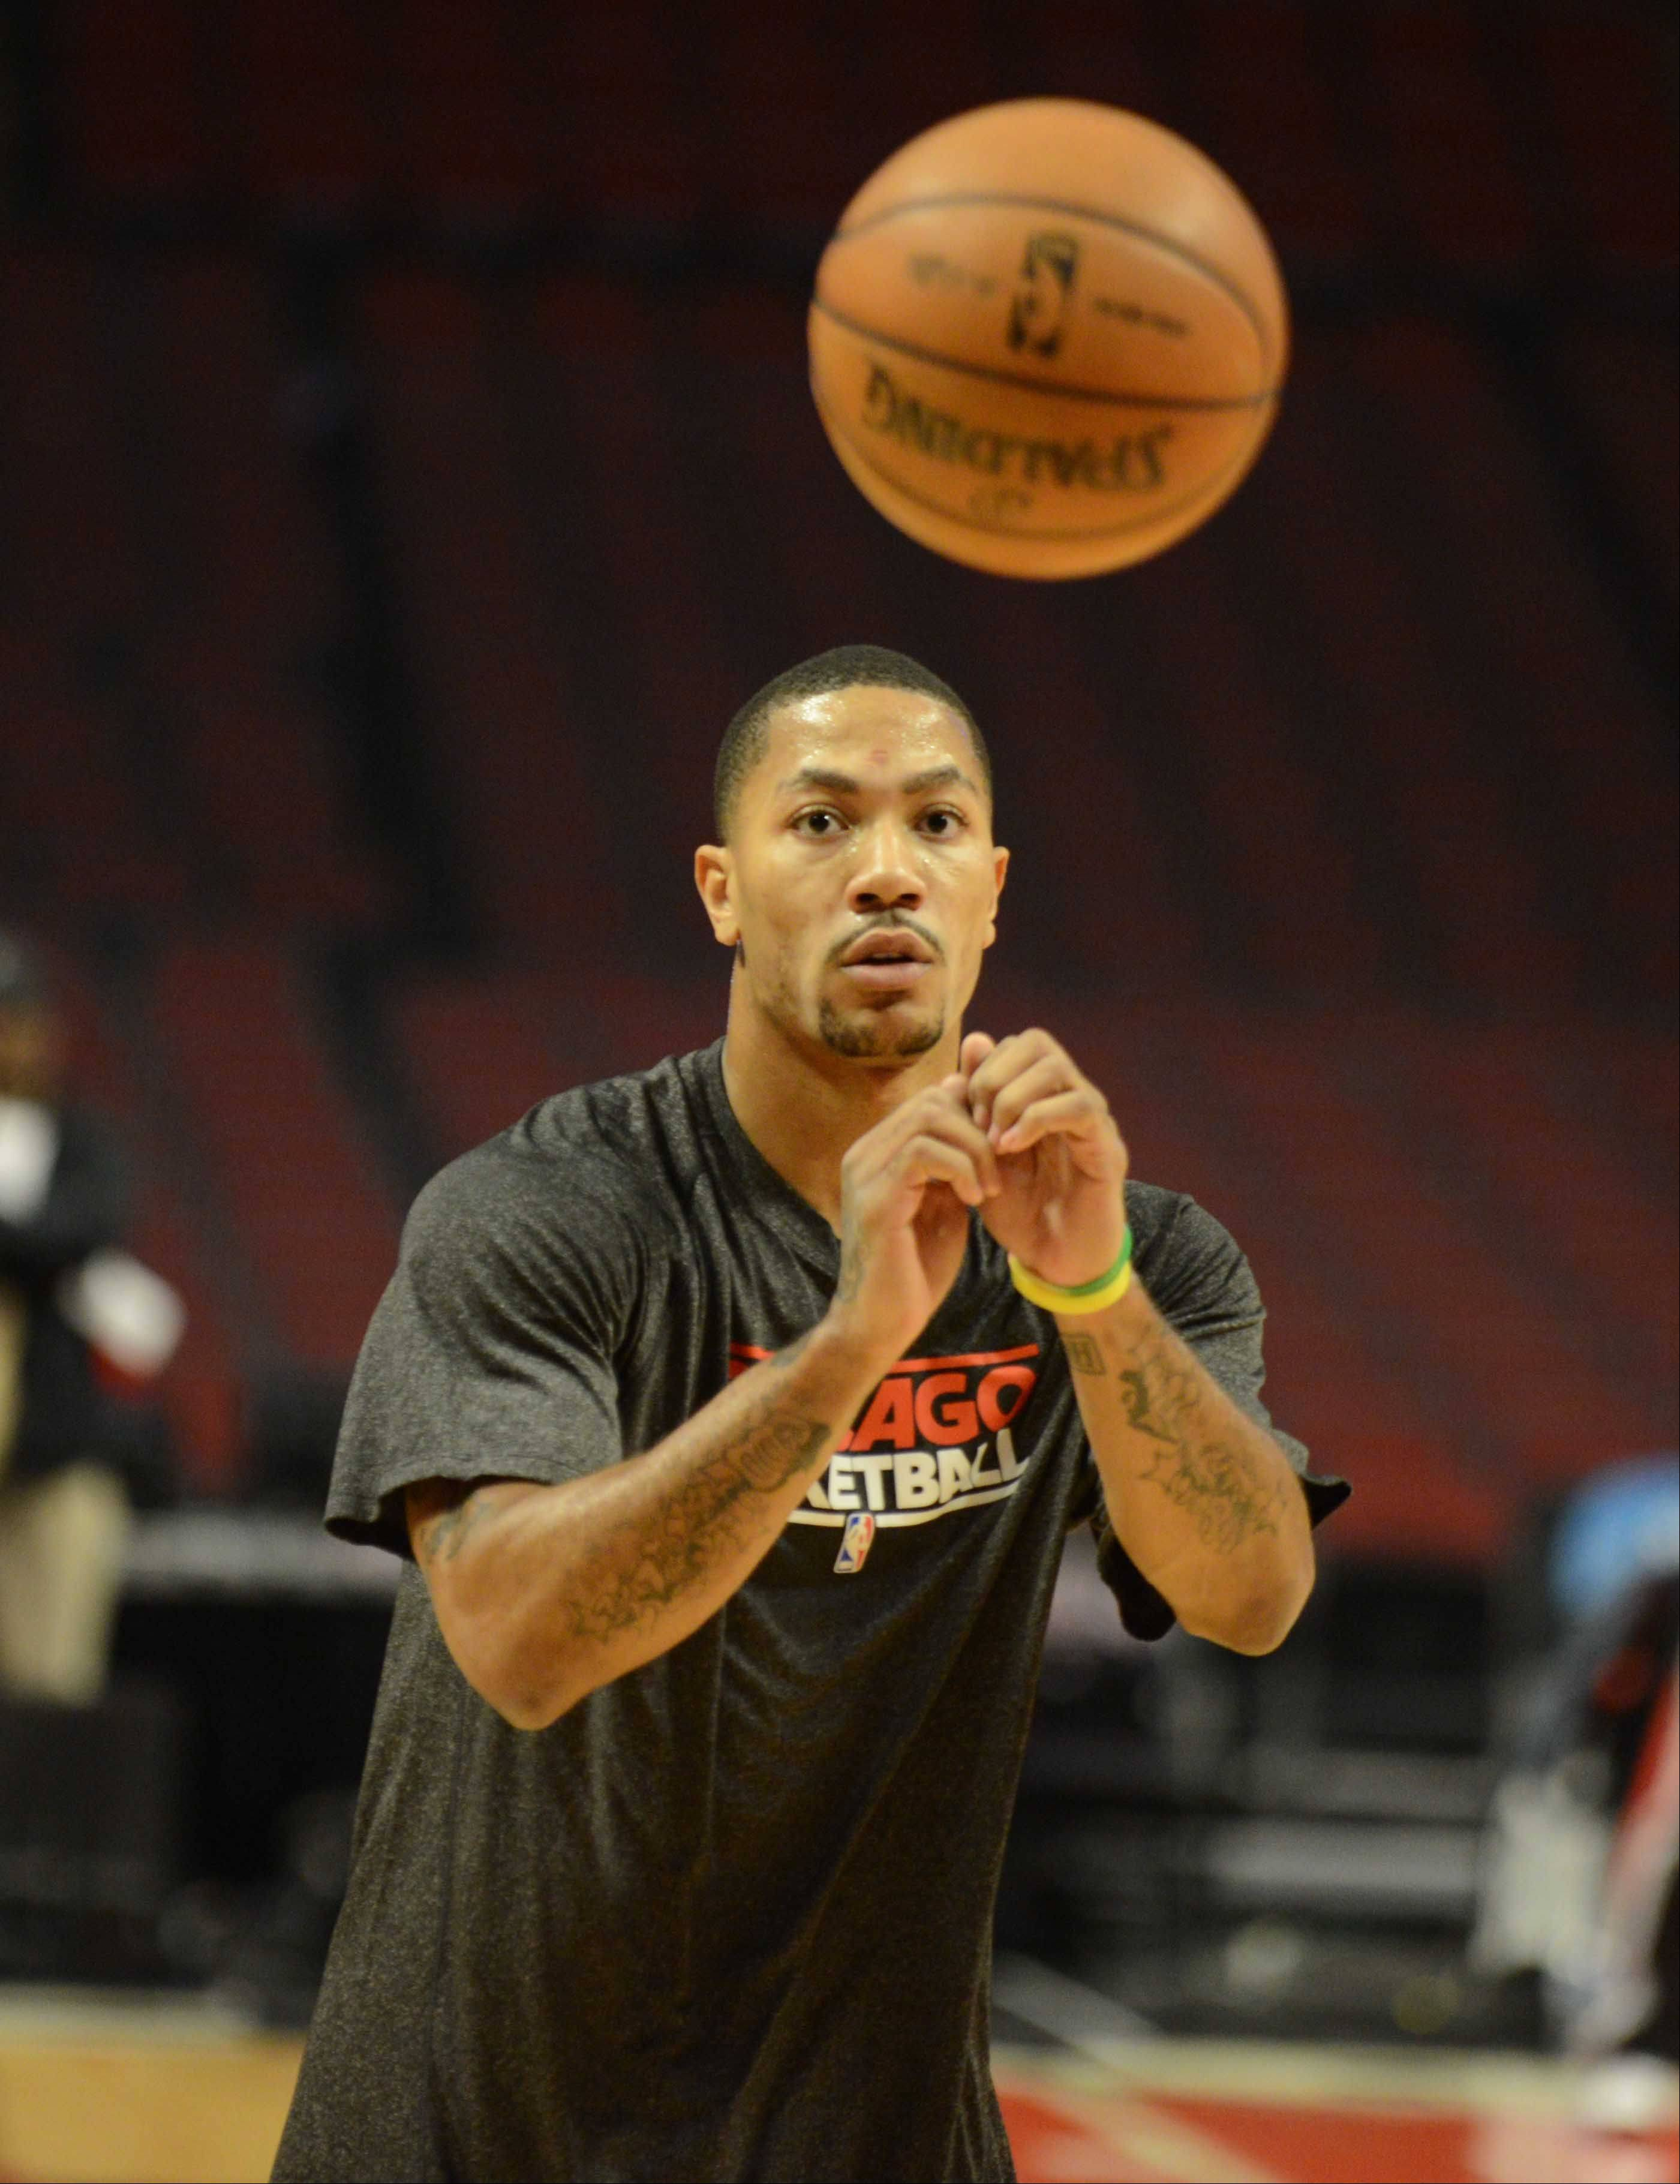 Derrick Rose takes part in warm-ups.